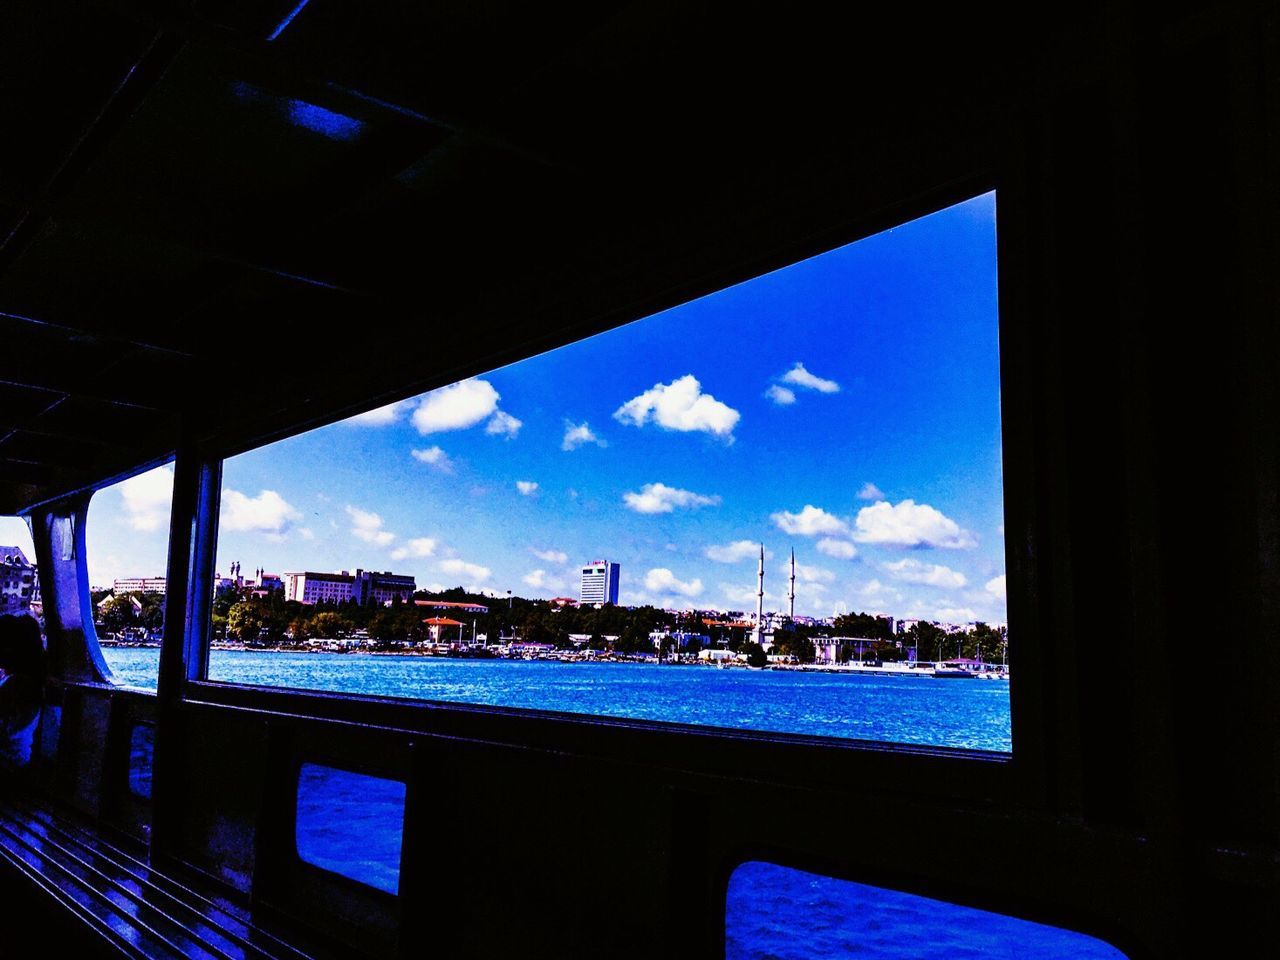 EyeEm Selects EyeEmNewHere Window Sky Cloud - Sky Transportation Water Sea Indoors  Nautical Vessel Day Blue Vacations Architecture No People Cityscape Nature Neon Life